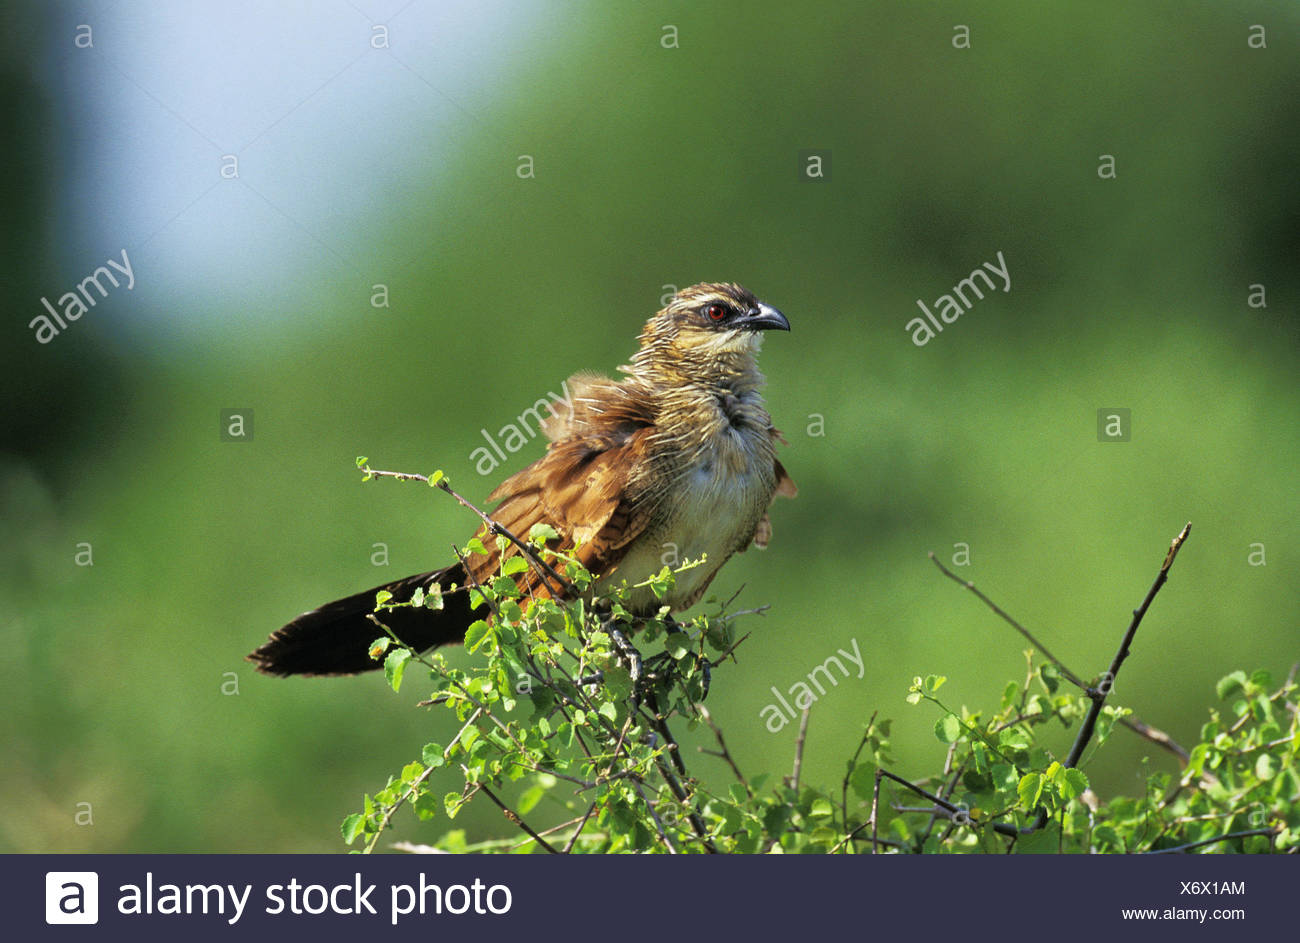 White-Browed Coucal or Burchell's Coucal, centropus superciliosus, Adult, South Africa - Stock Image